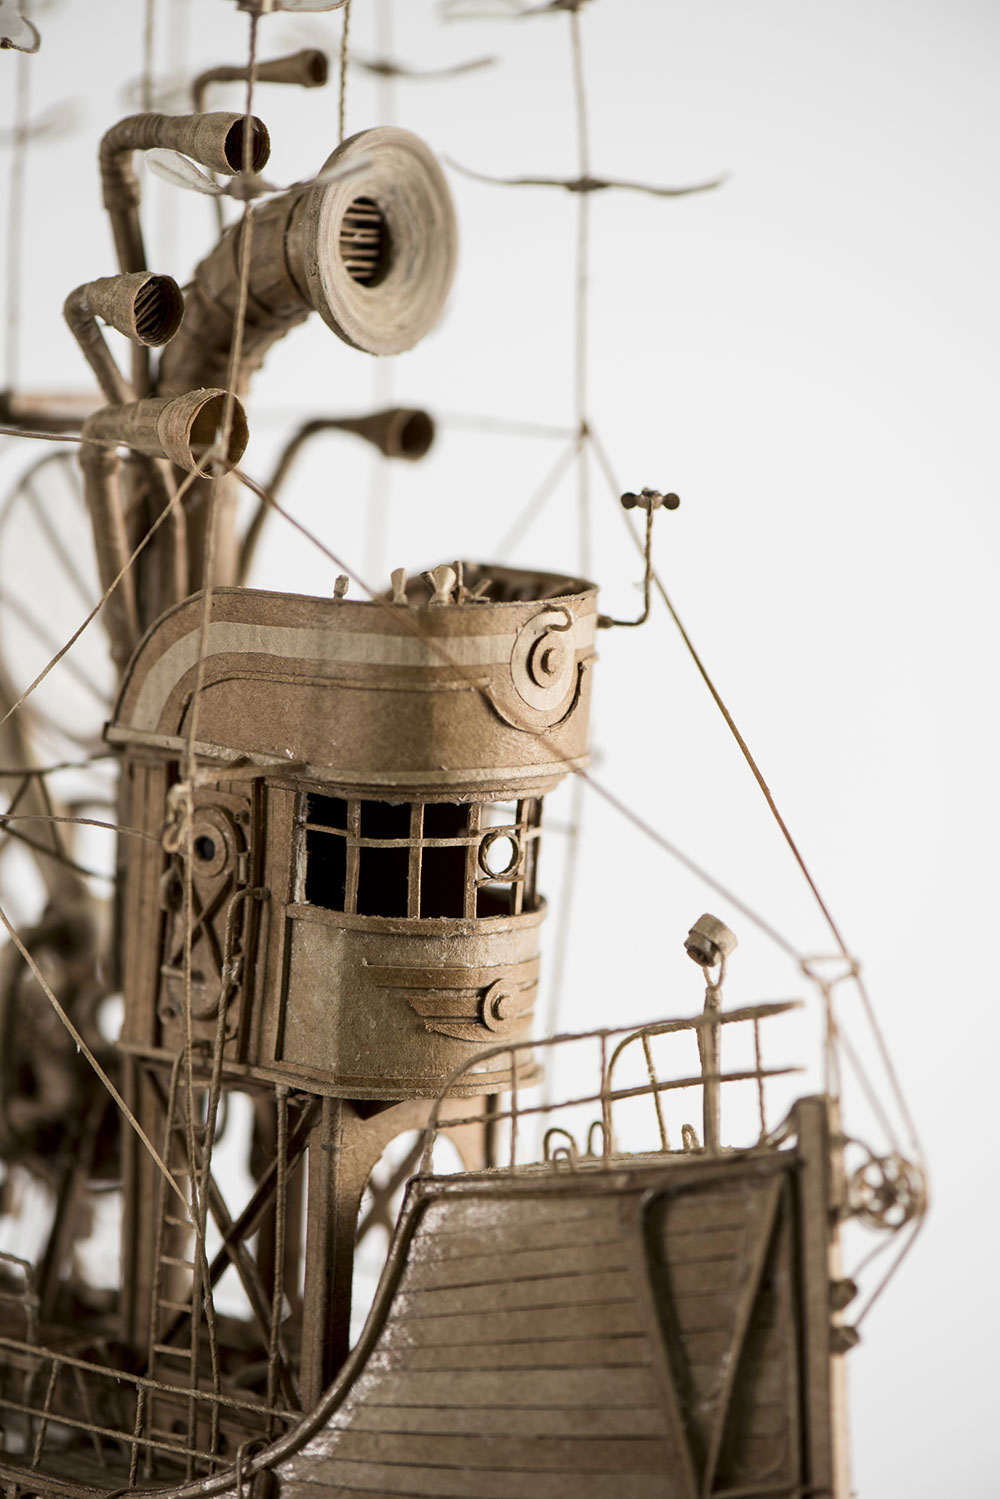 Magnificent Cardboard Airships by Jeroen van Kesteren